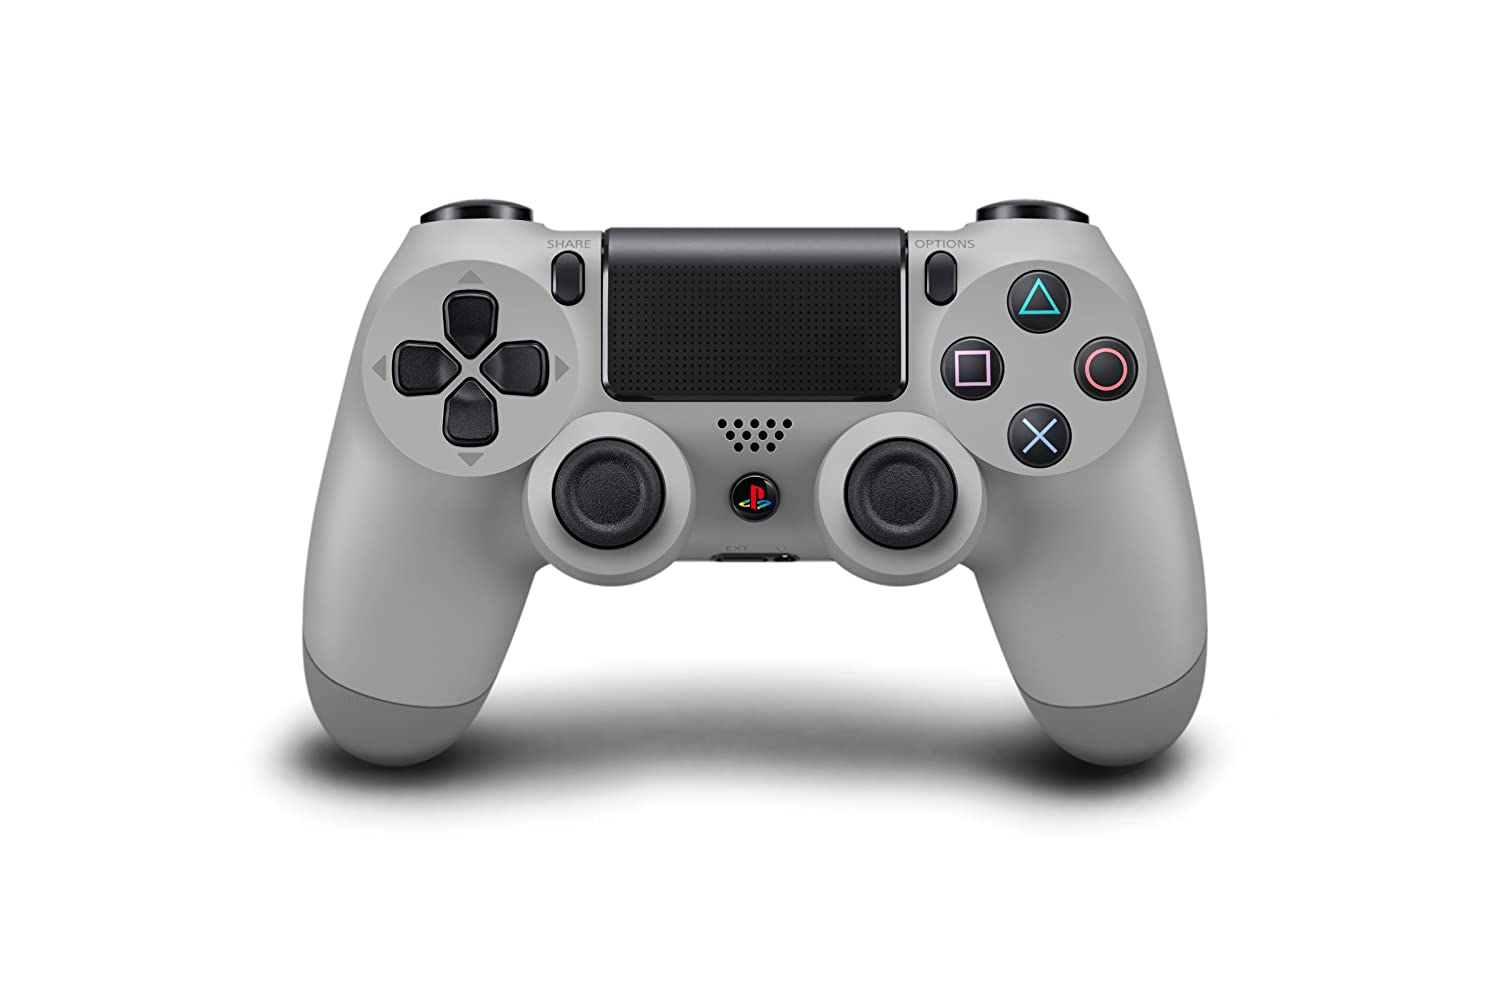 sony playstation 1 controller. sony playstation dualshock 4 - 20th anniversary edition (ps4): amazon.co.uk: pc \u0026 video games playstation 1 controller